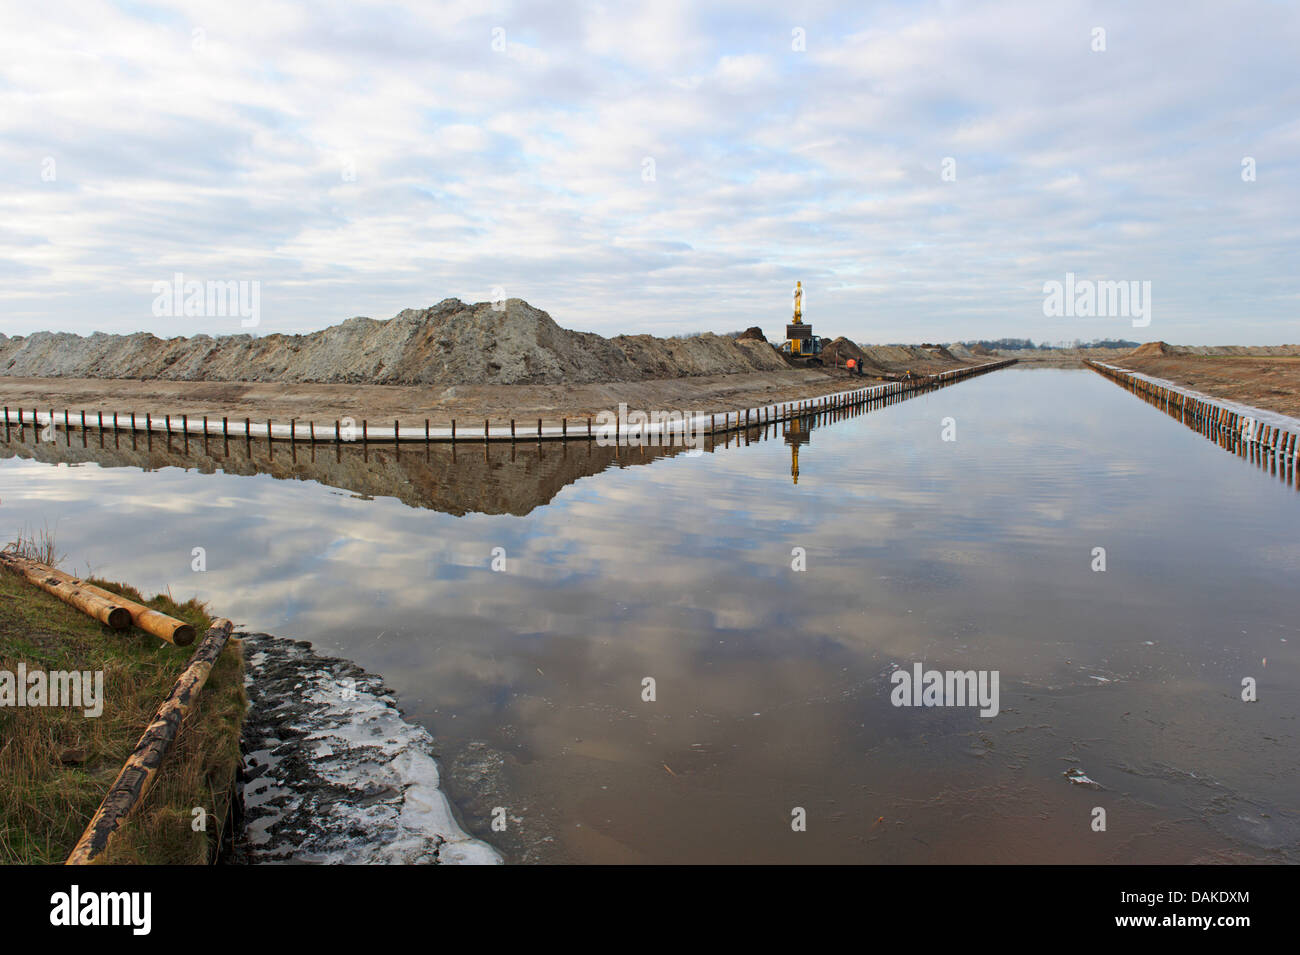 renewal of waterways, Netherlands, Texel - Stock Image